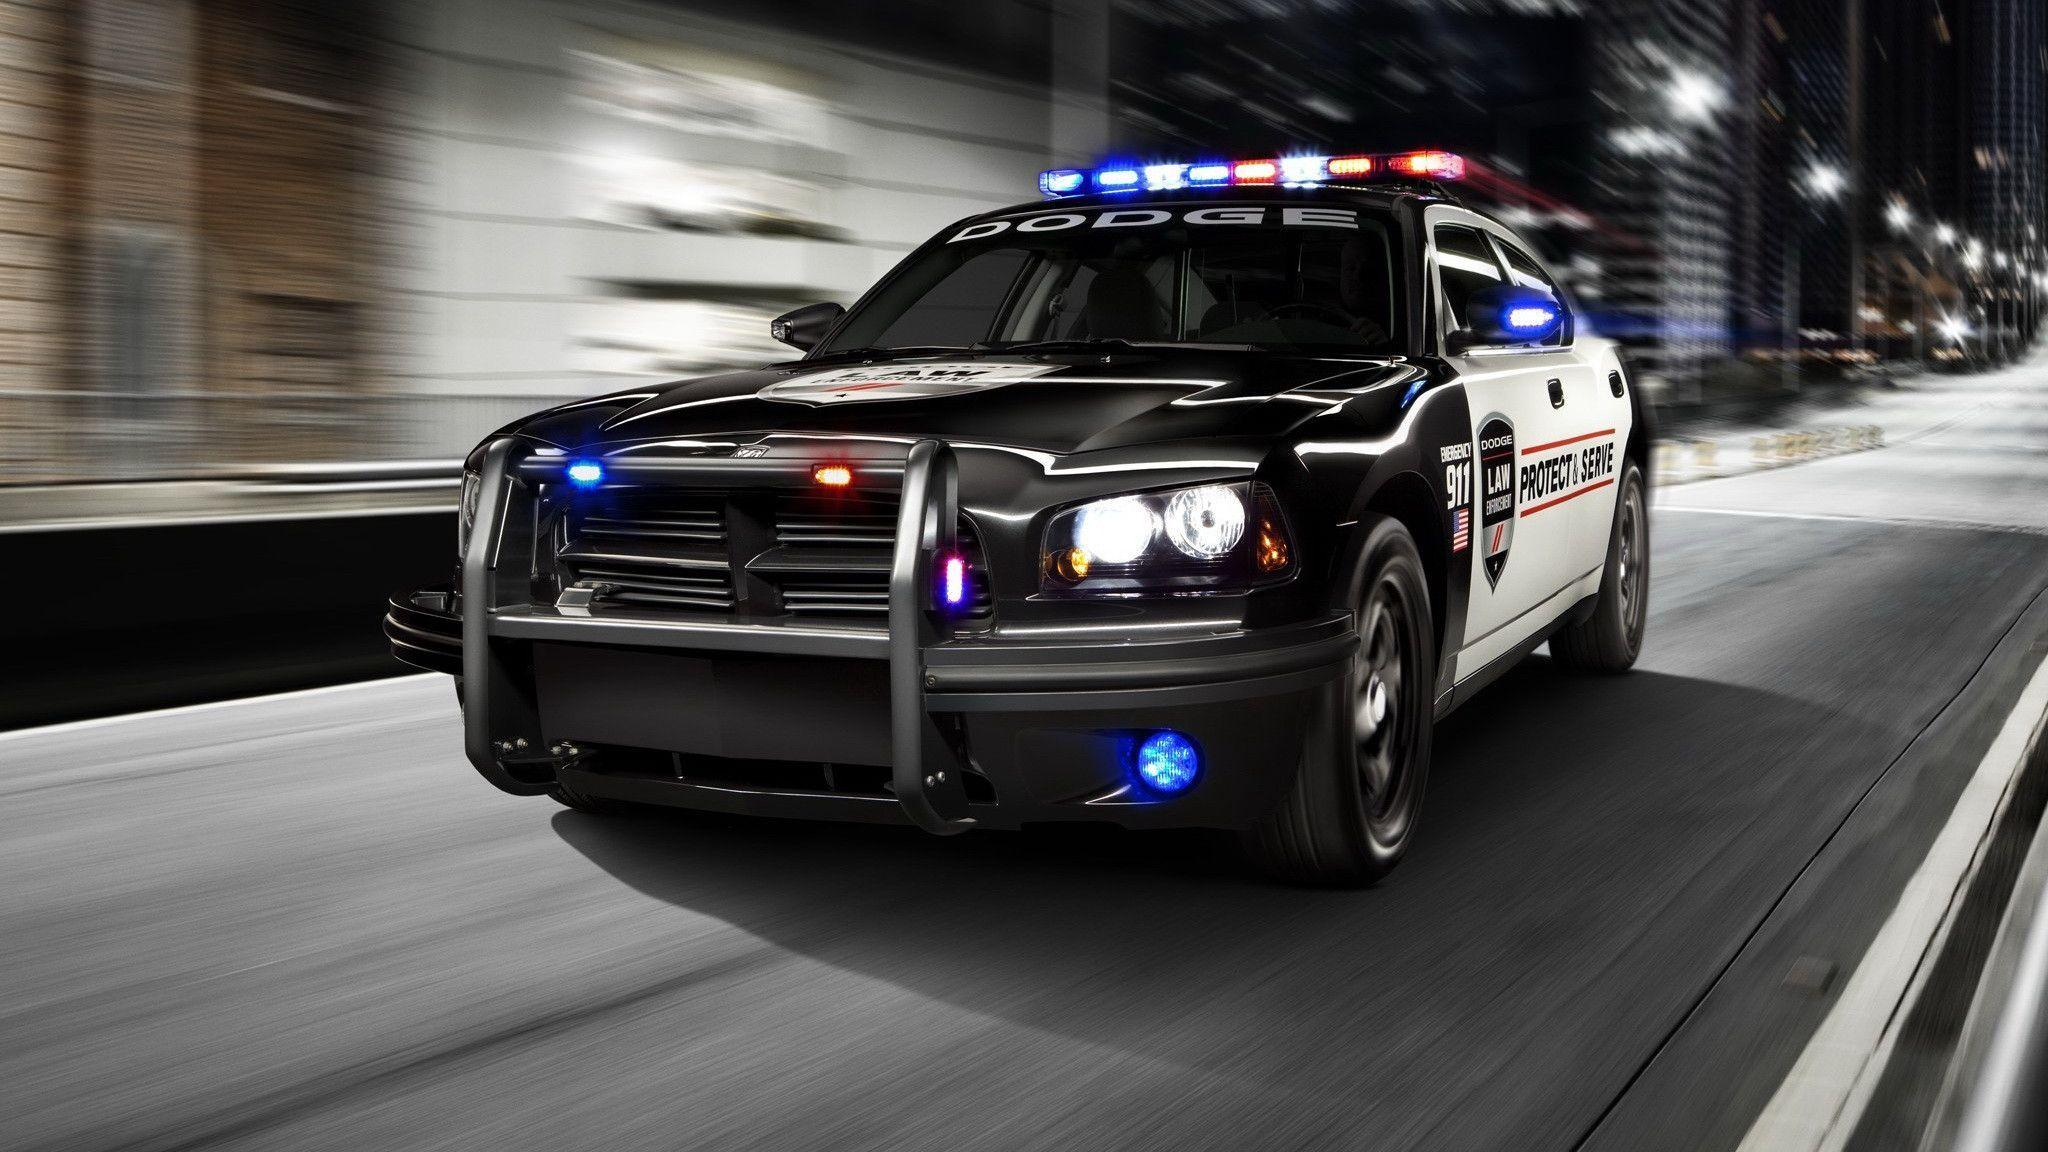 Police Car Wallpapers 2048x1152